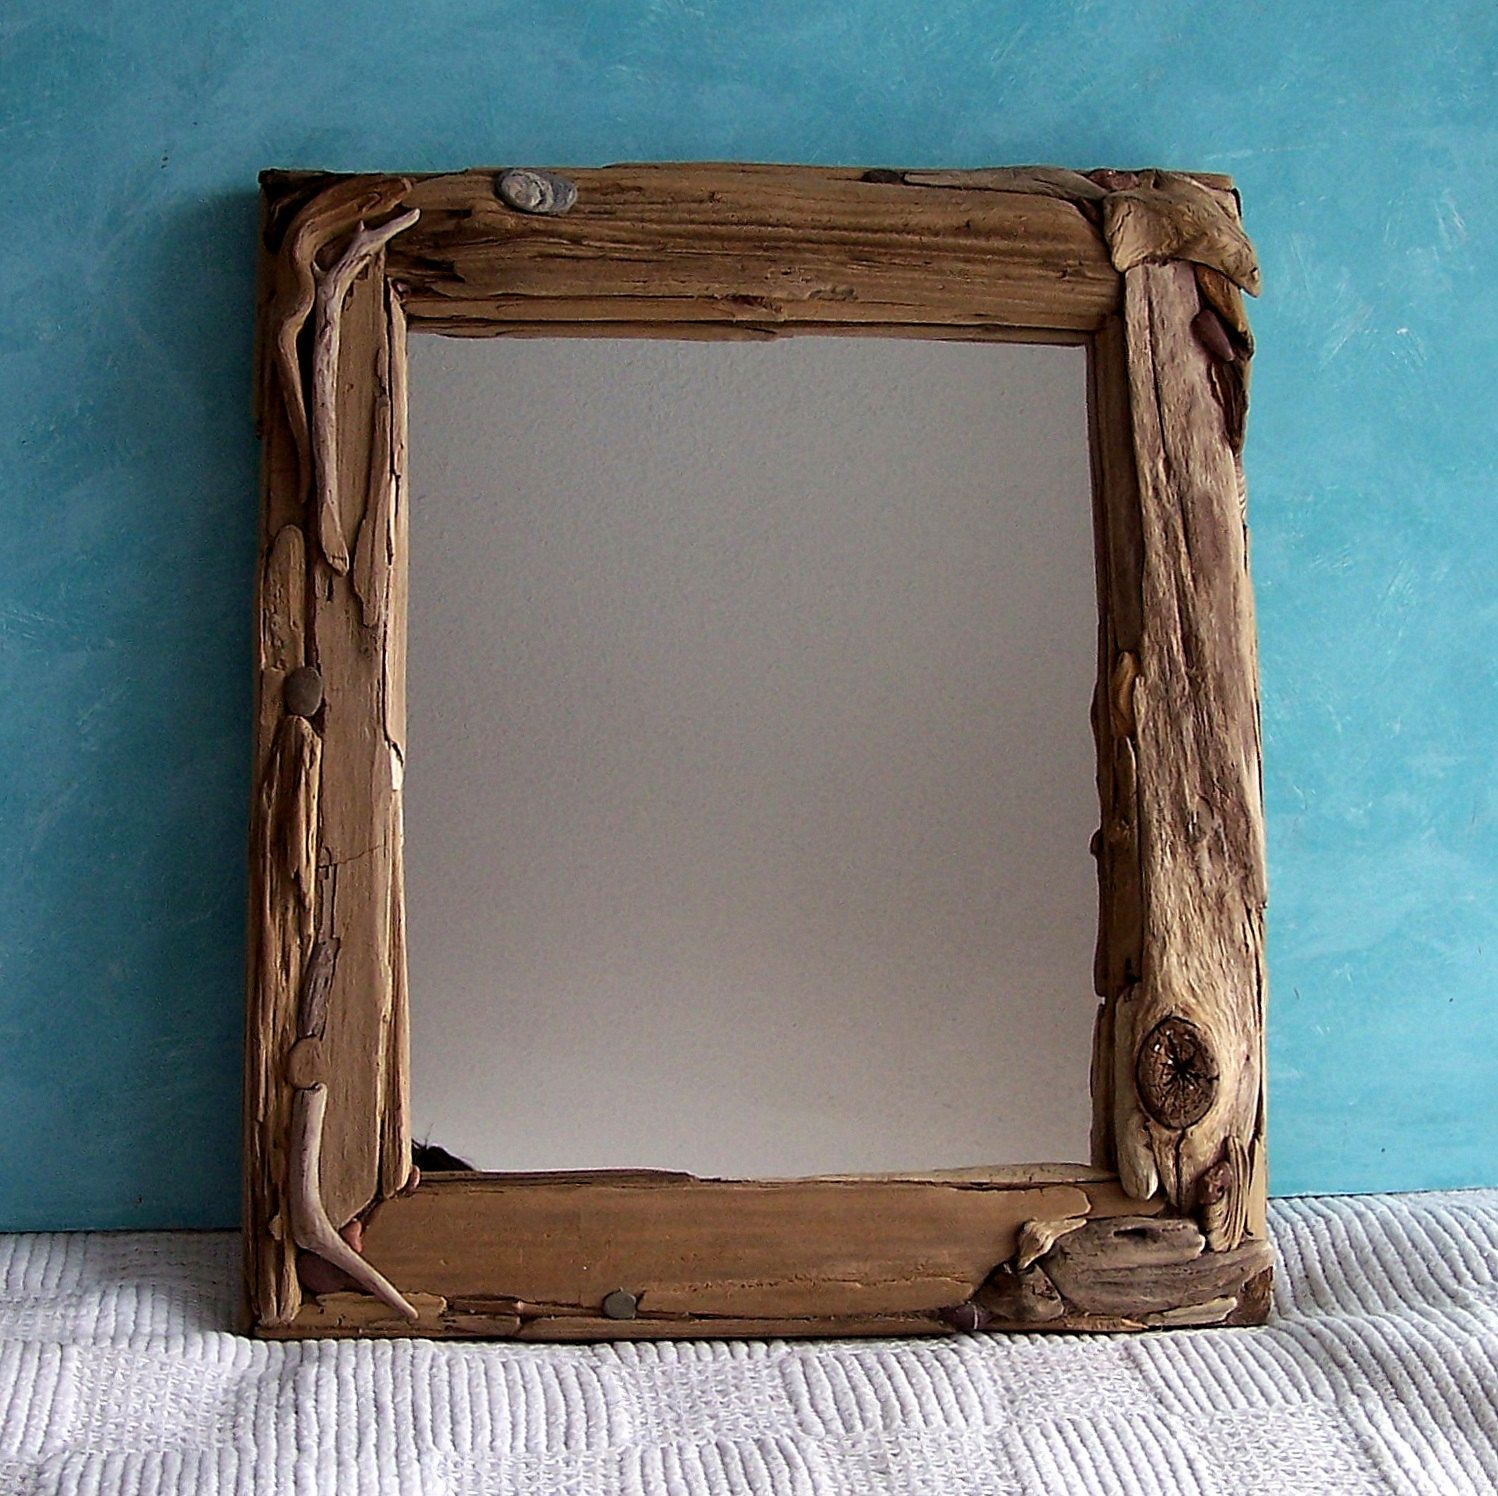 Driftwood Mirror 13 25 x 15 5 Beach Cottage Decor Driftwood